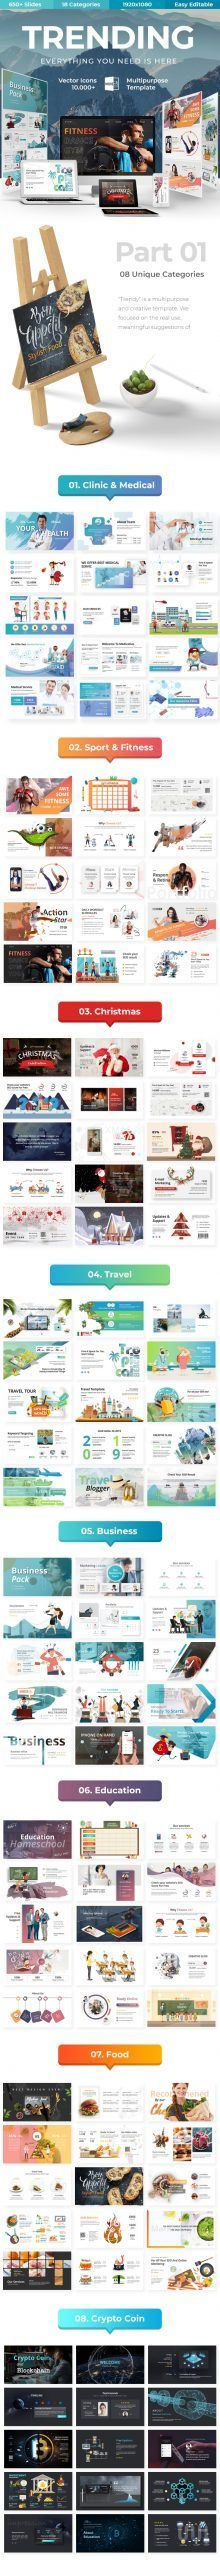 Trending Multipurpose Powerpoint Template #advertisement #branding #business #christmas #coin #compa...